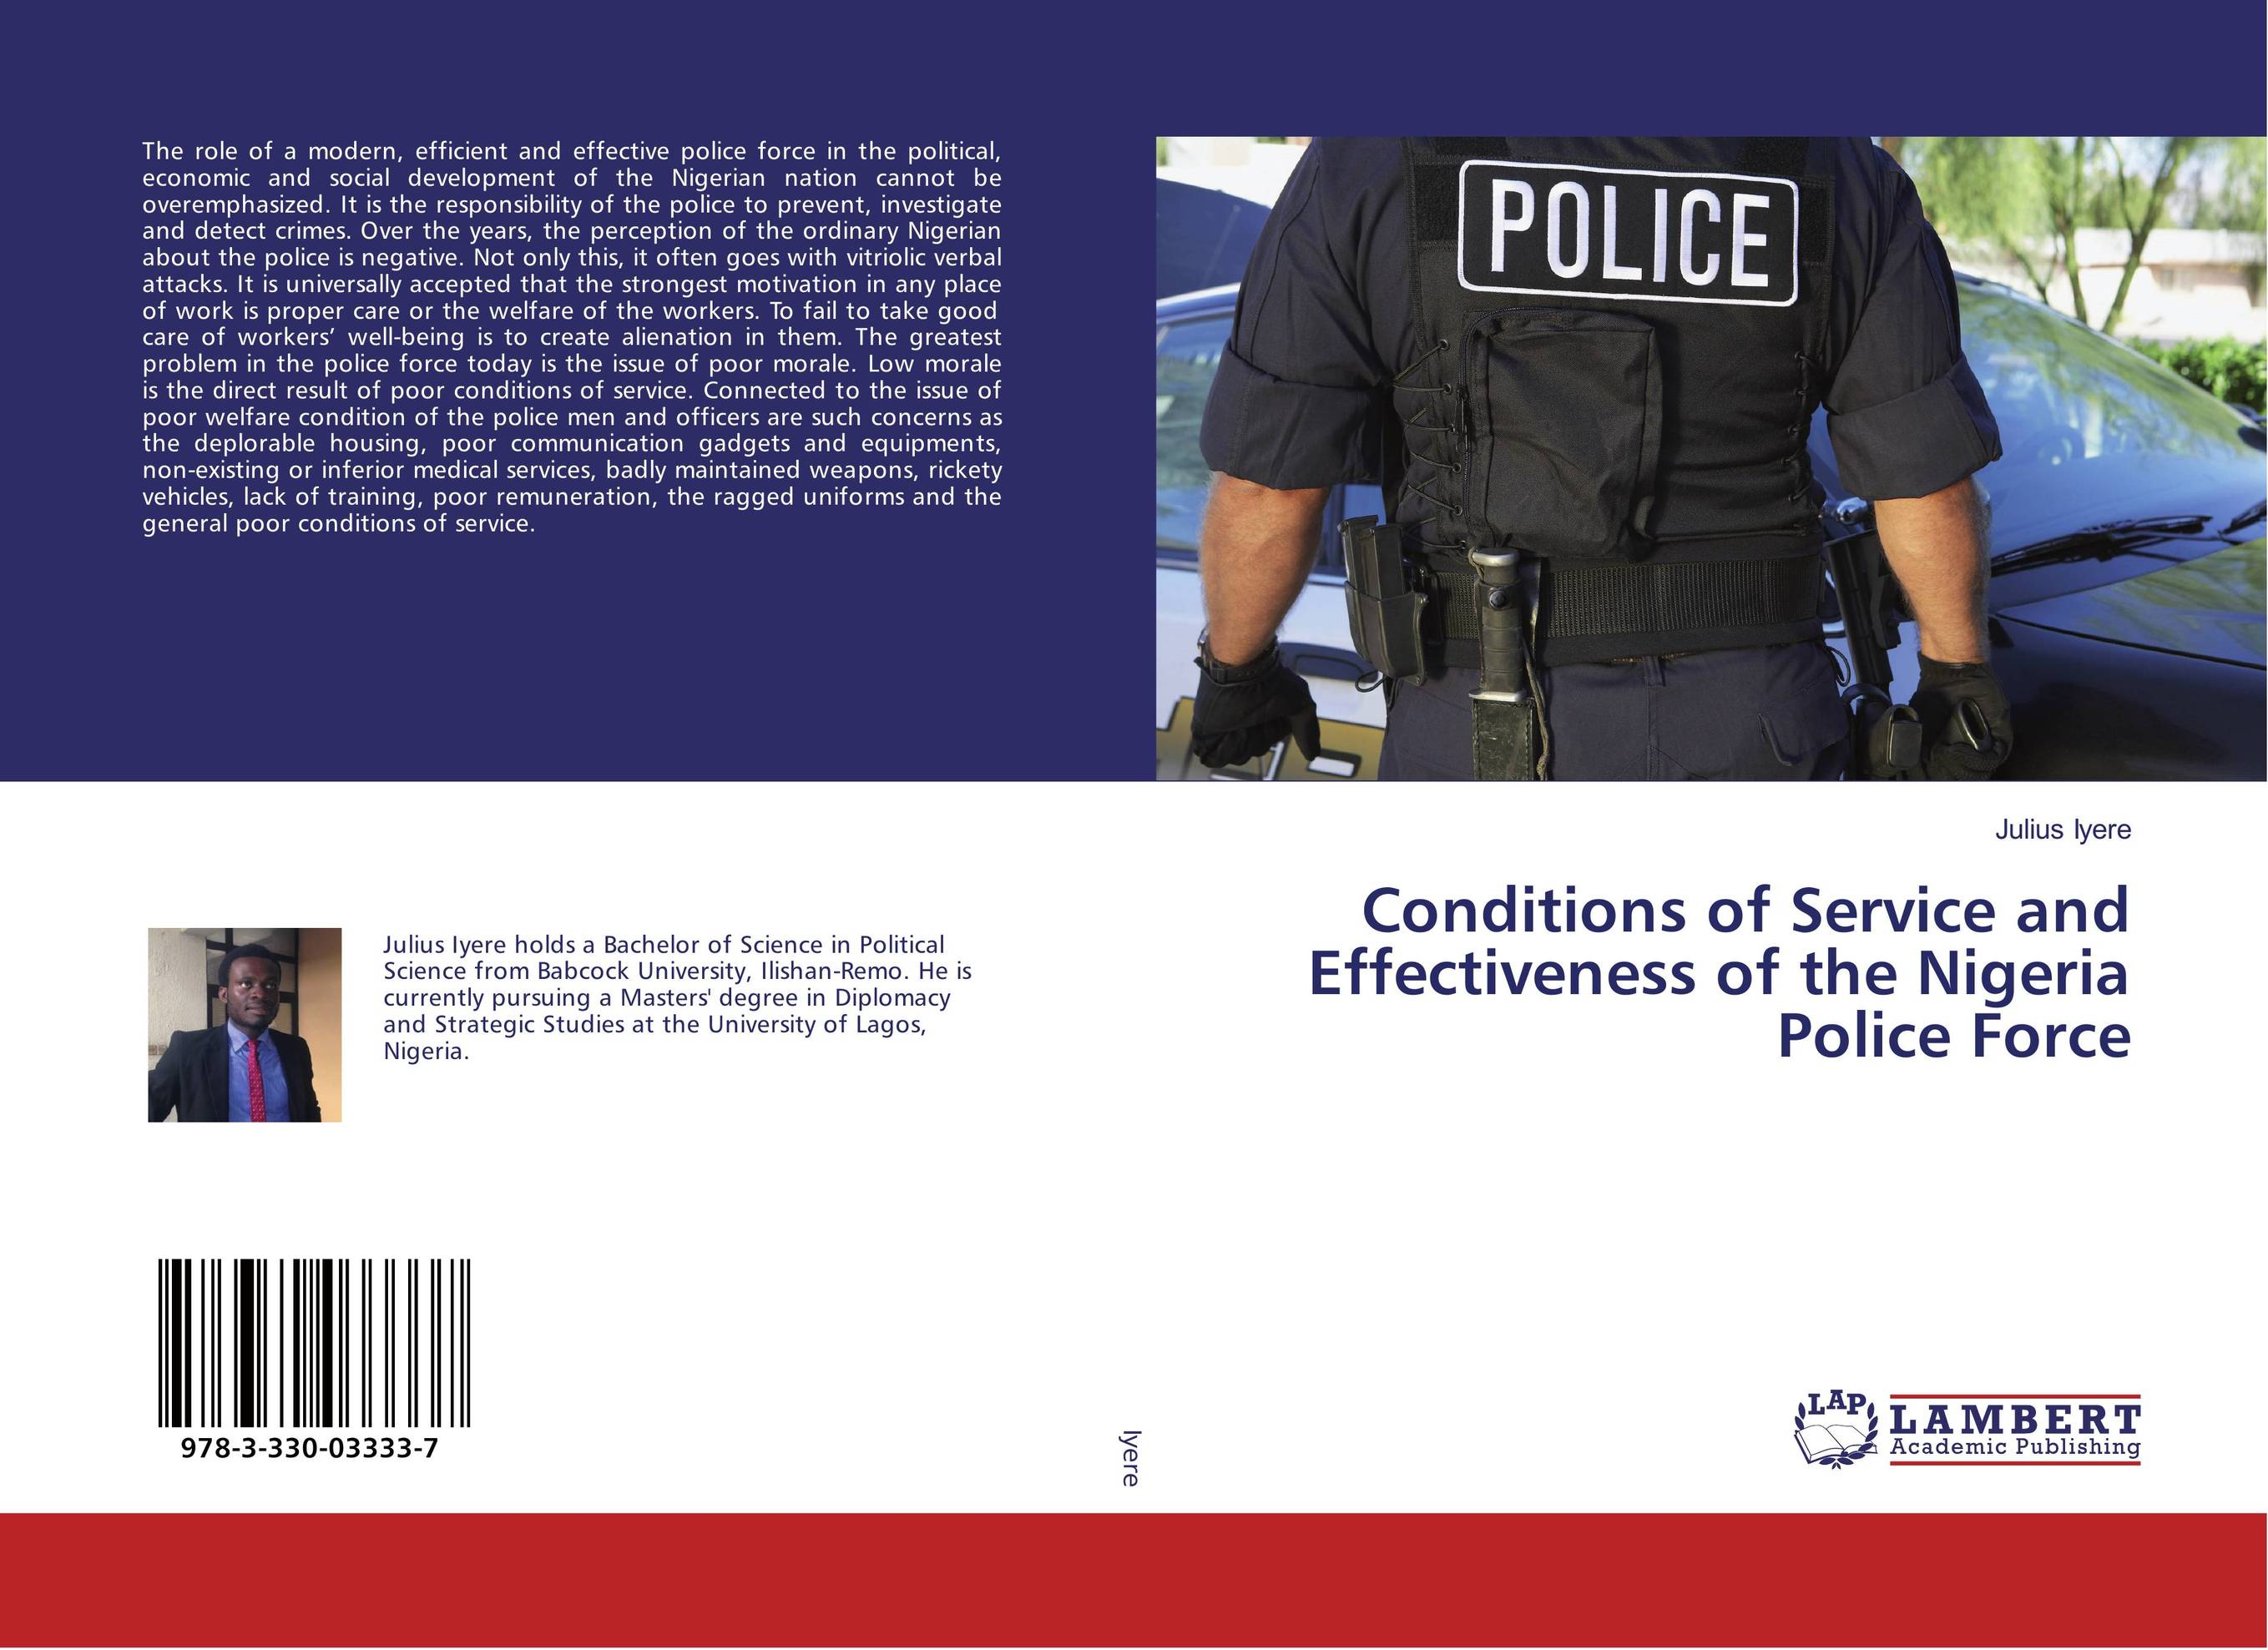 police efficiency and effectiveness The seminal study of patrol effectiveness was the kansas city preventive patrol experiment, conducted by the police foundation and published in 1974 this experiment tested the impact of three levels of patrolling strength, ranging from no patrol to twice the normal level, in fifteen patrol beats during the course of a year.